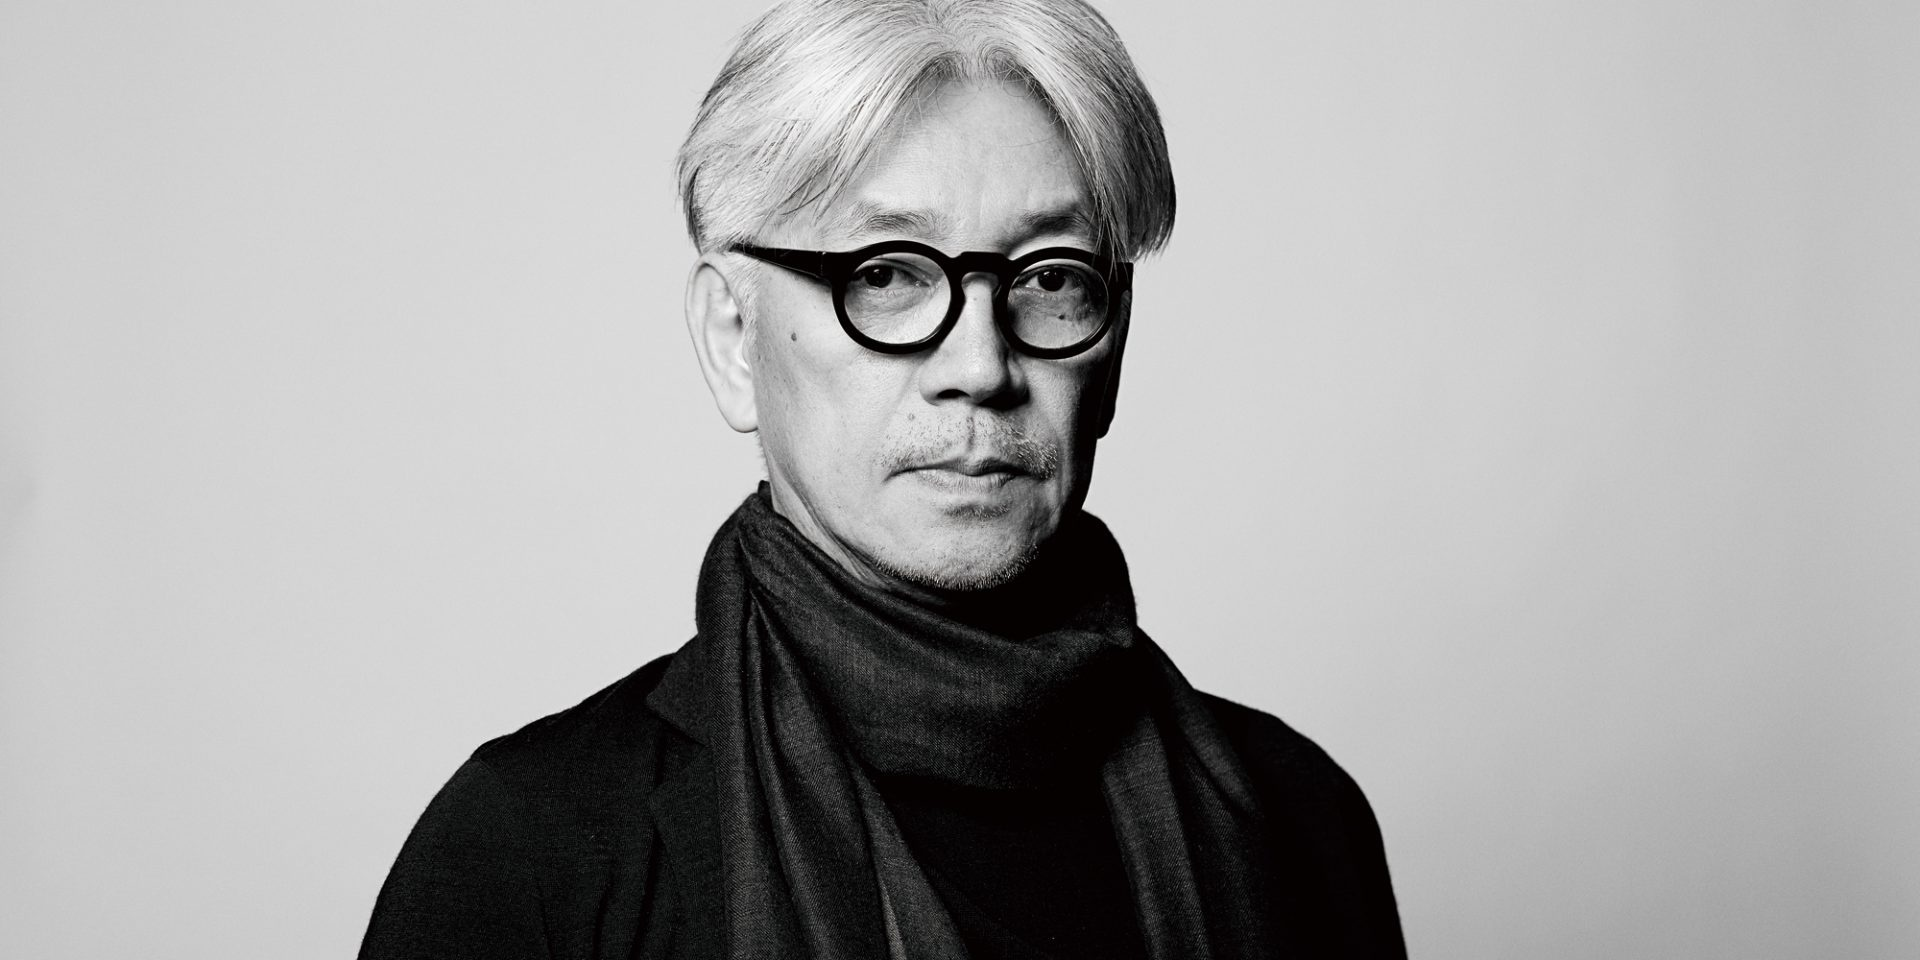 Ryuichi Sakamoto's past concerts are now available for viewing